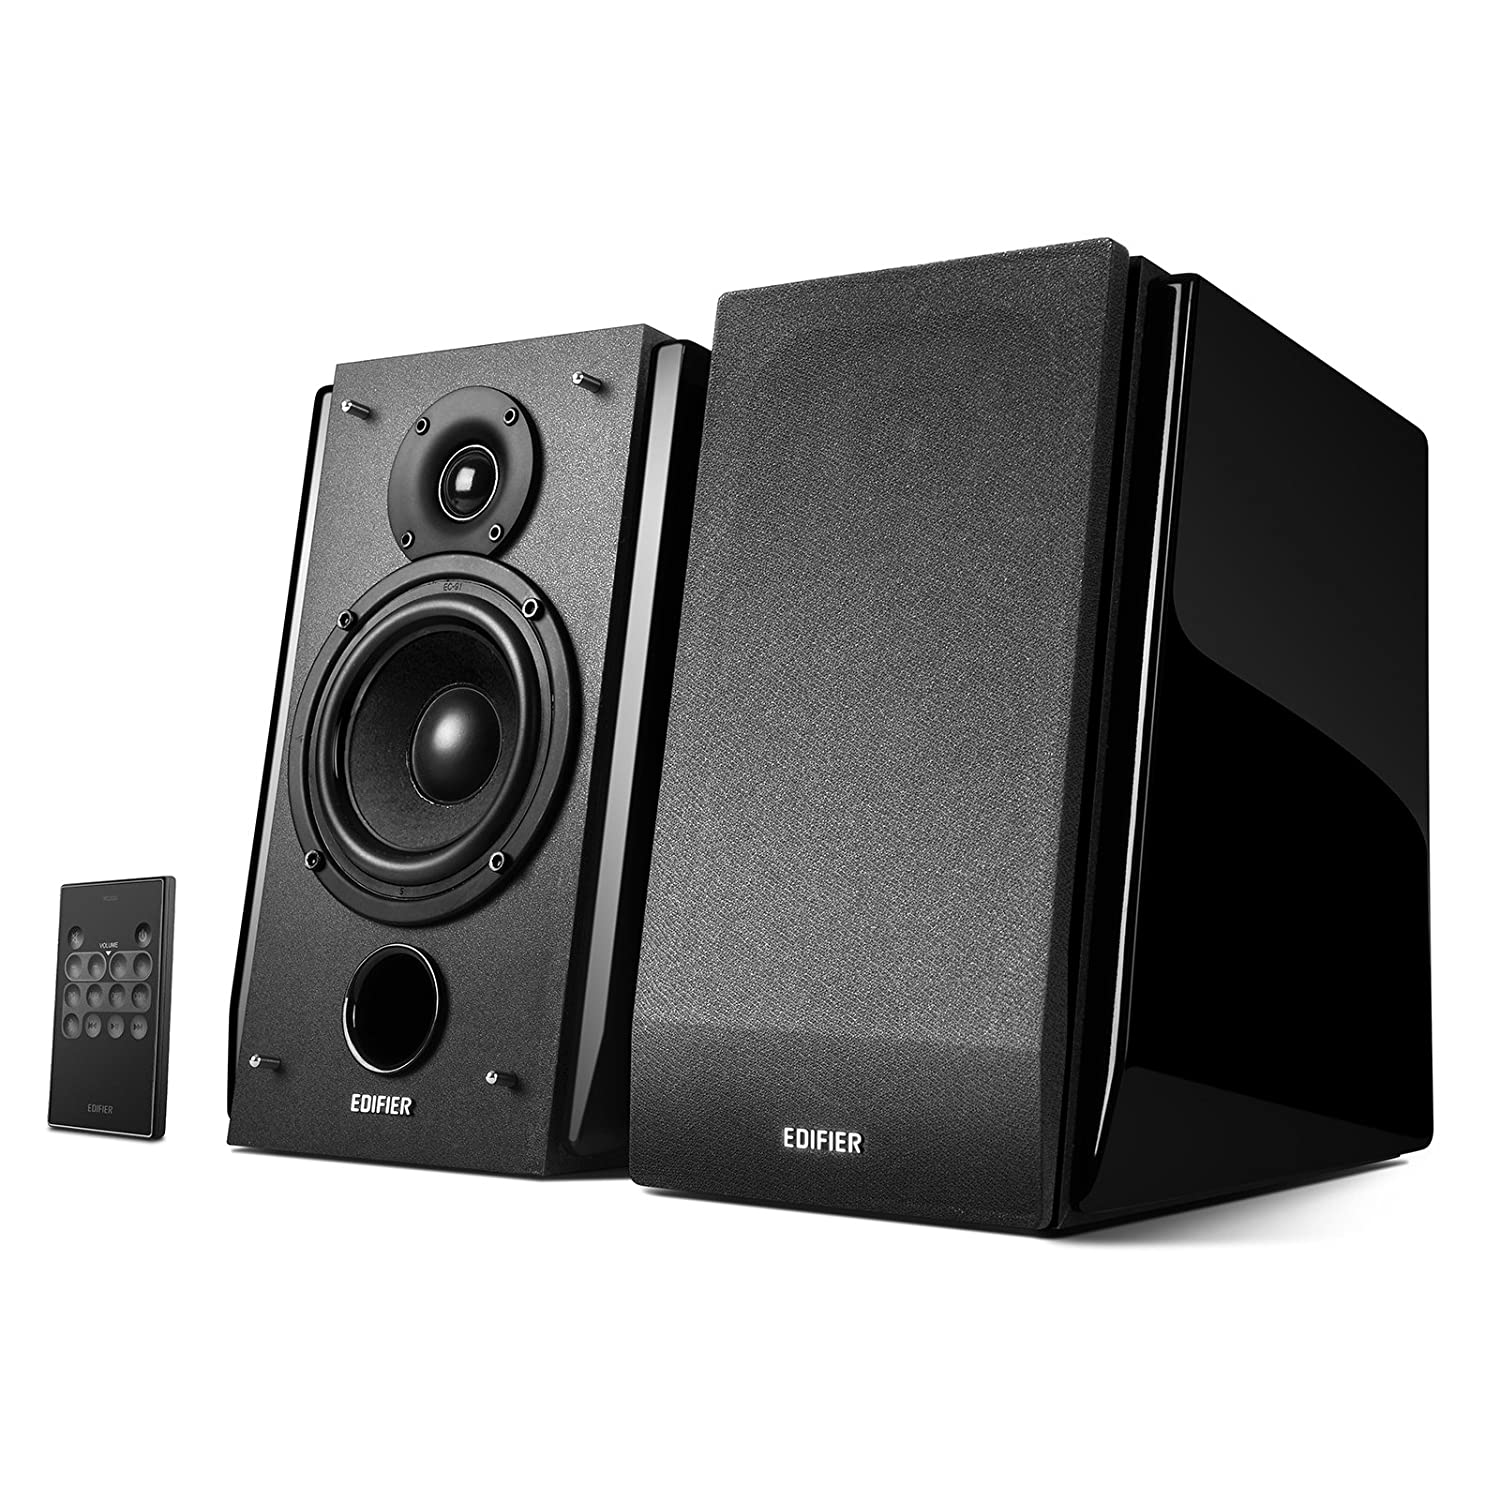 Edifier R1850DB Active Bookshelf Speakers with Bluetooth and Optical Input - 2.0 Studio Monitor Speaker - Built-in Amplifier with Subwoofer Line Out edifier-r1850db-black